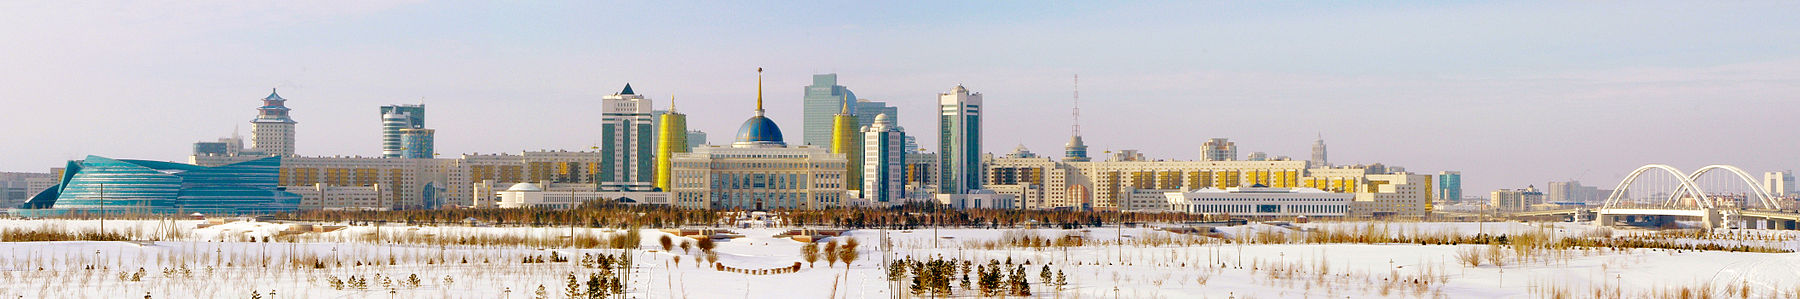 Central Astana on a Sunny, Snowy Day in February 2013.jpg